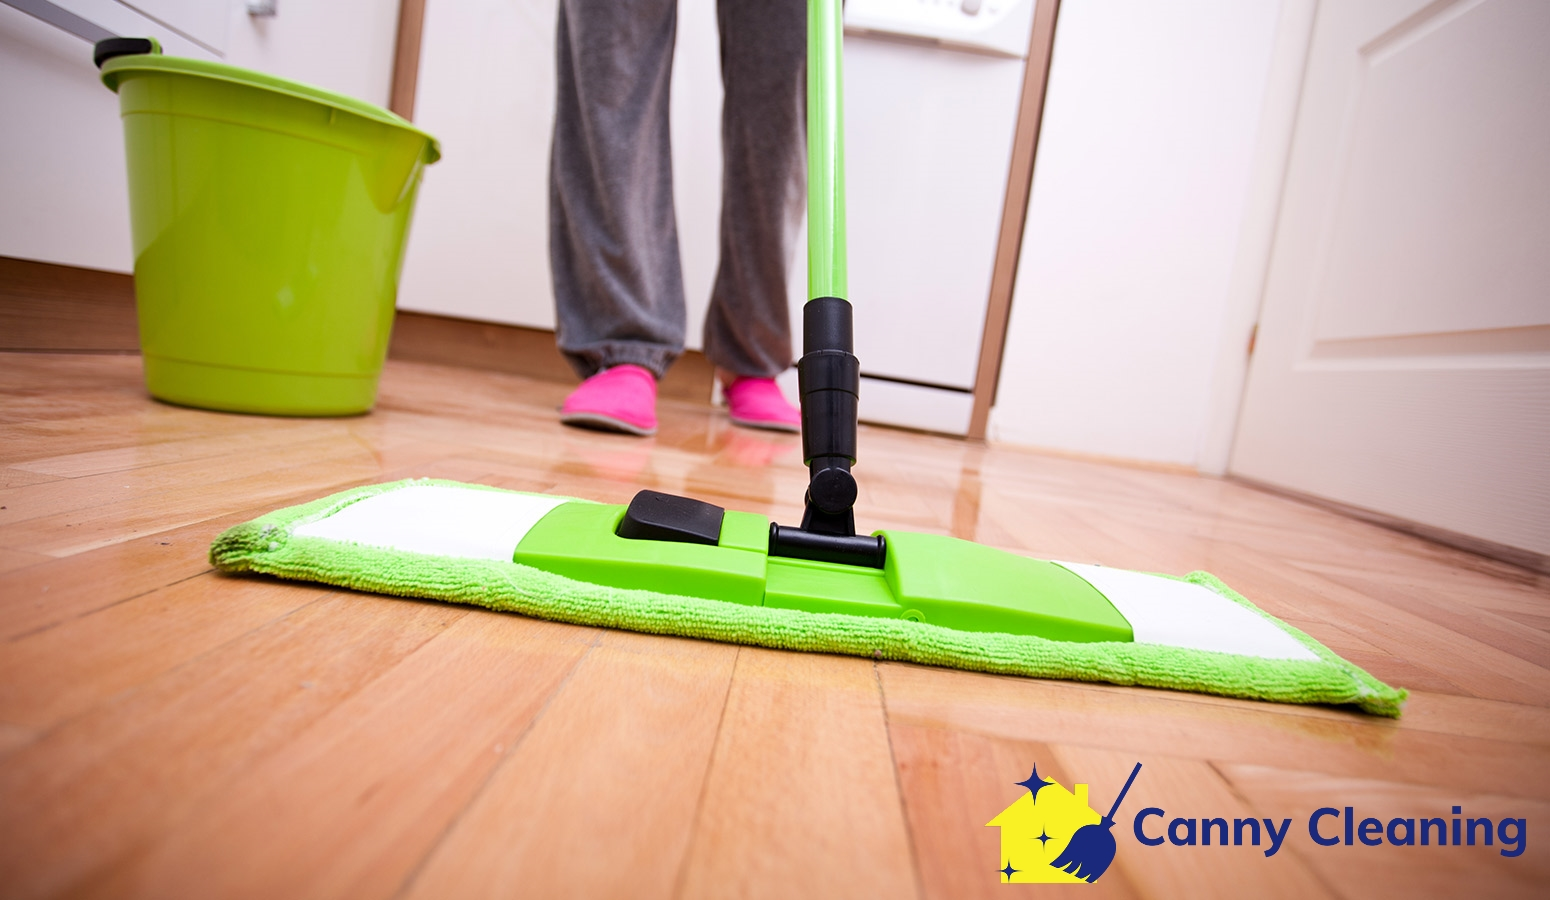 cleaning company canny cleaning services singapore